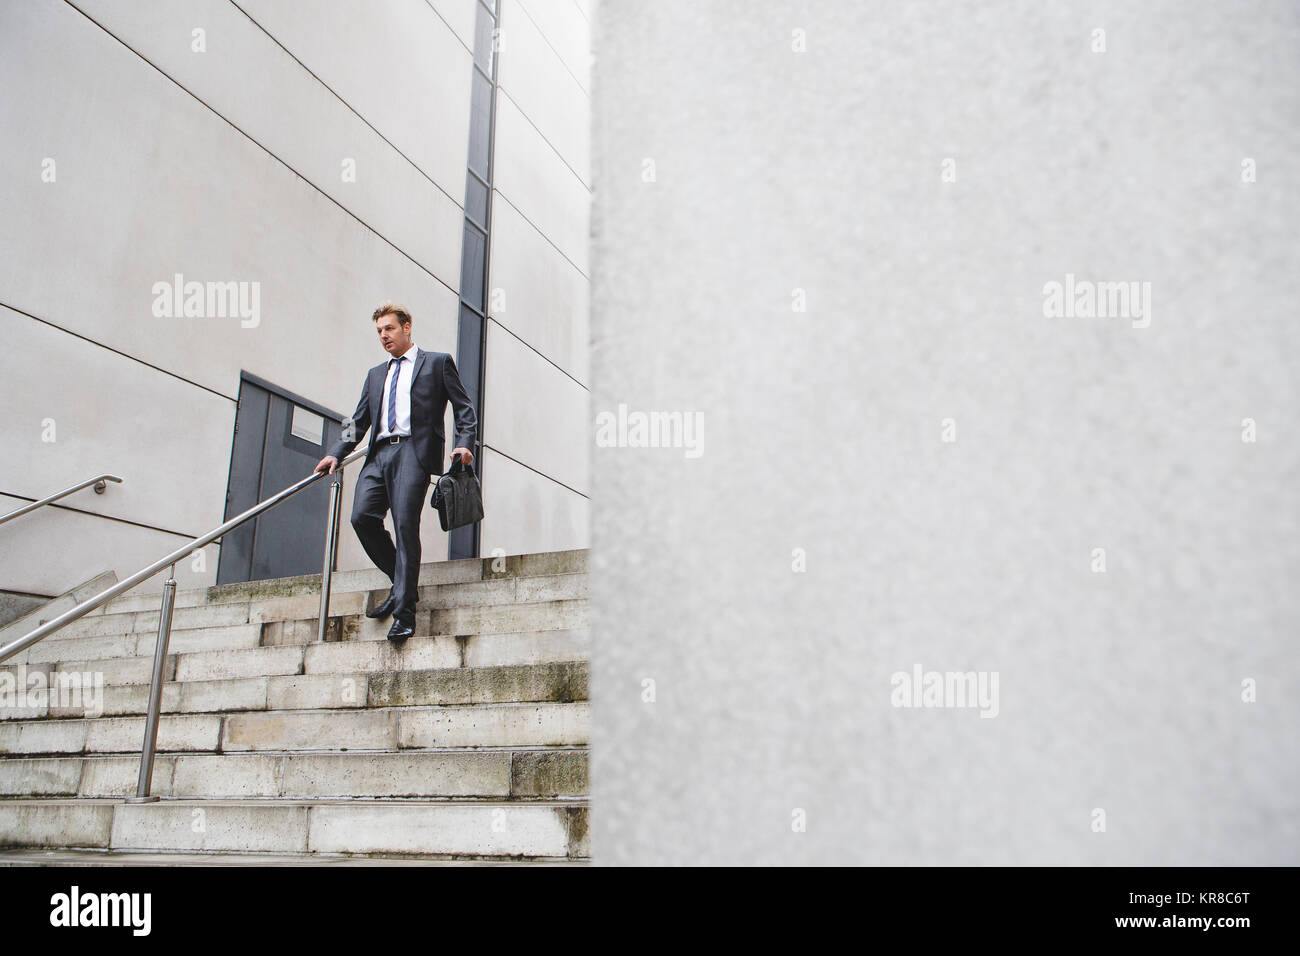 Businessman on the stairs - Stock Image